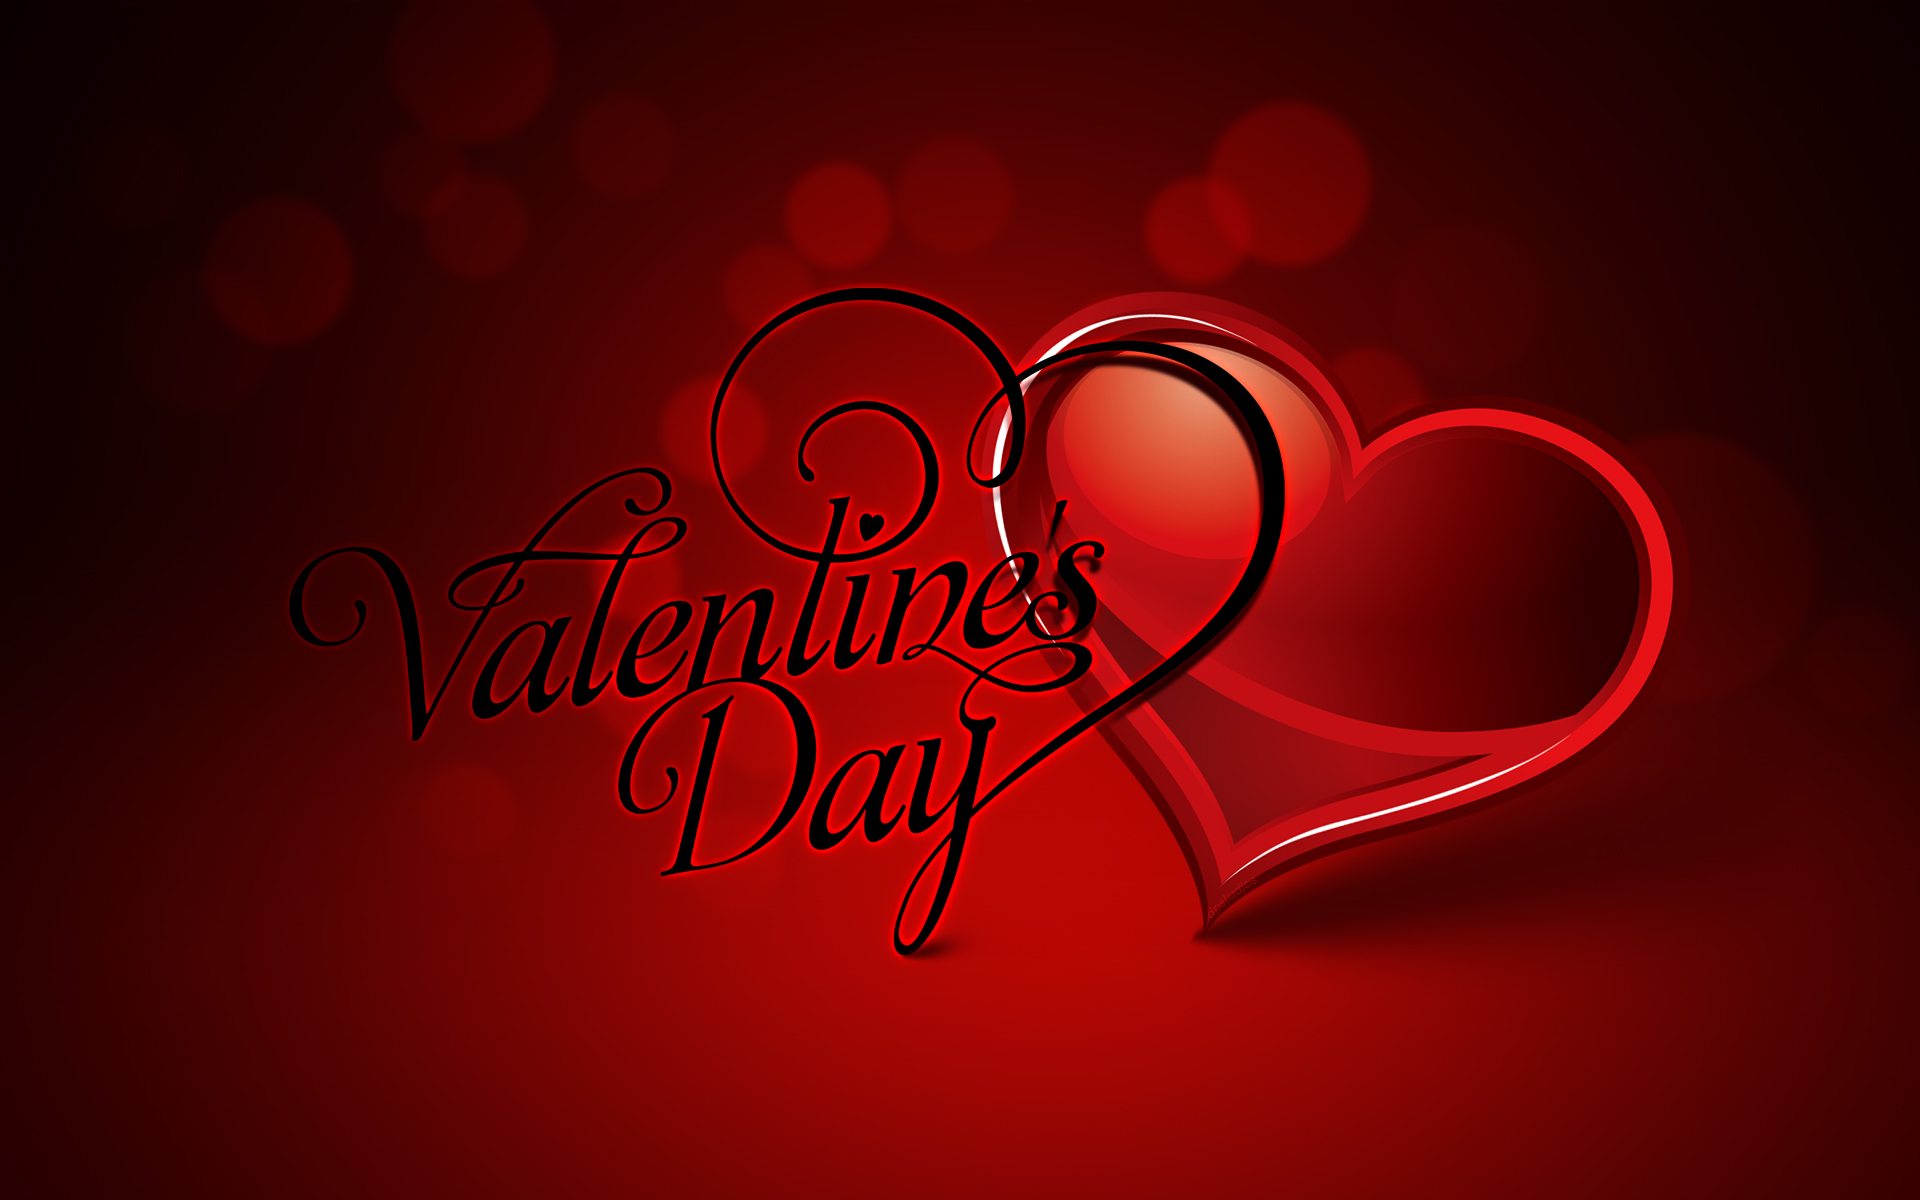 is under the valentines day wallpapers category of hd wallpapers 1920x1200